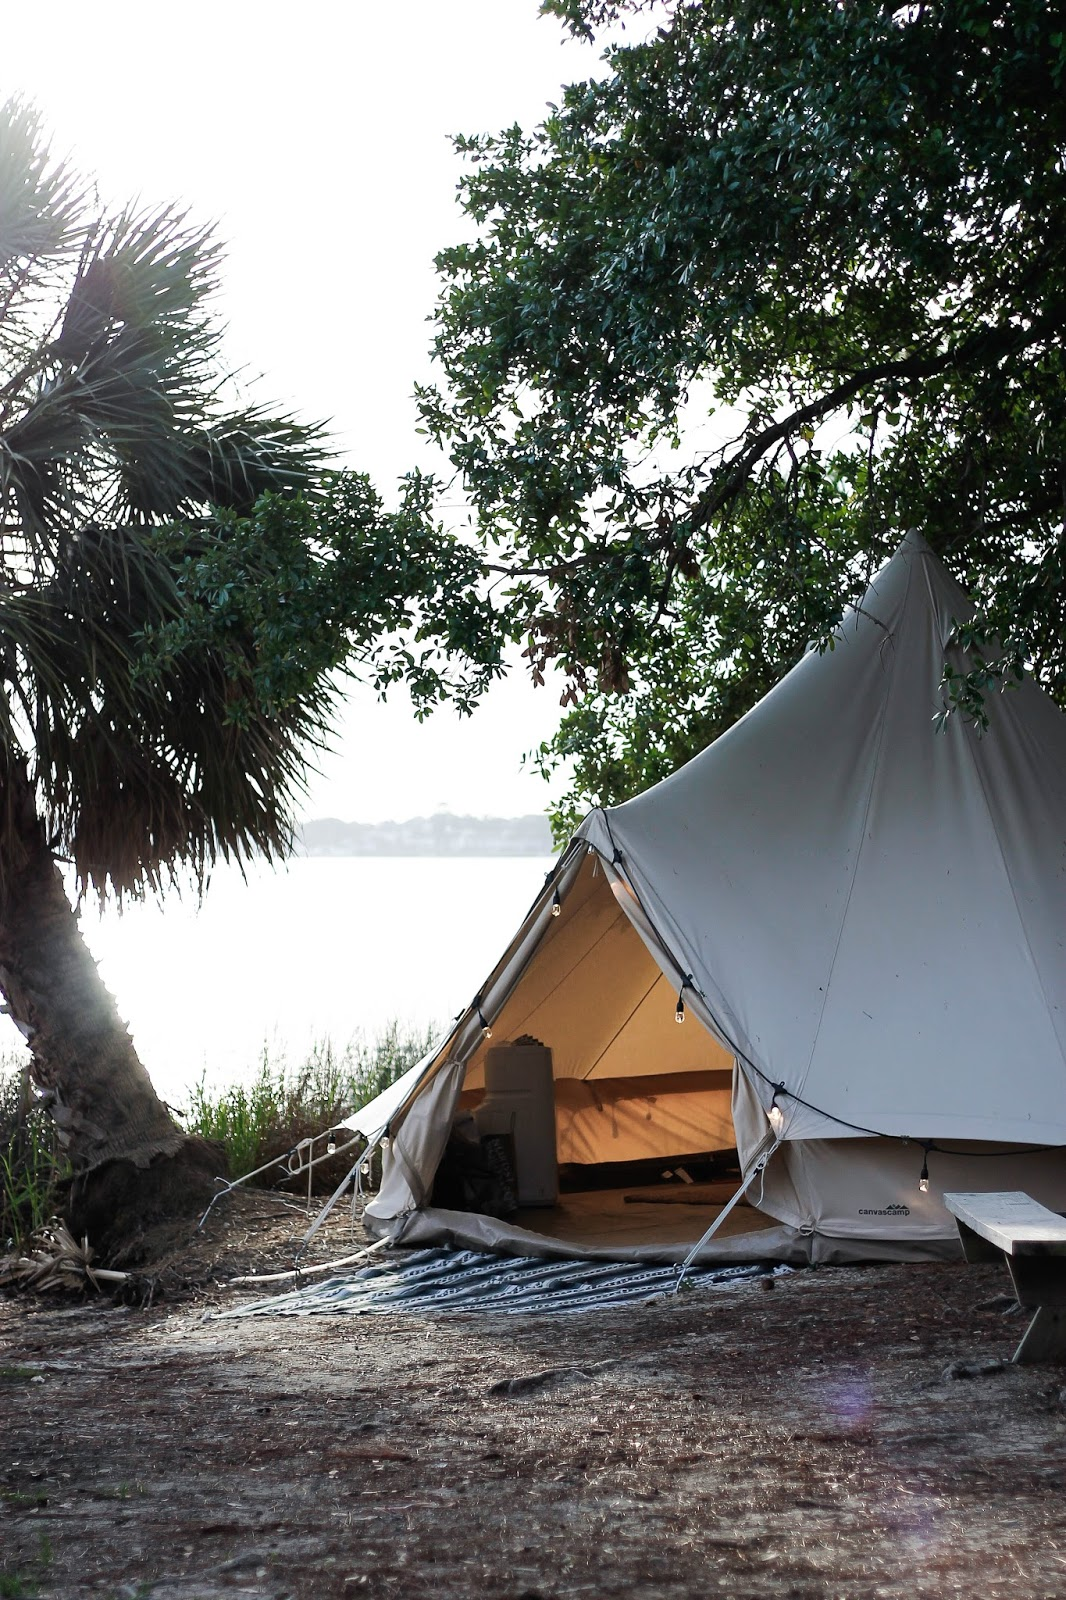 What It's Like To Go Glamping: Tent Tour... | The Dainty ...